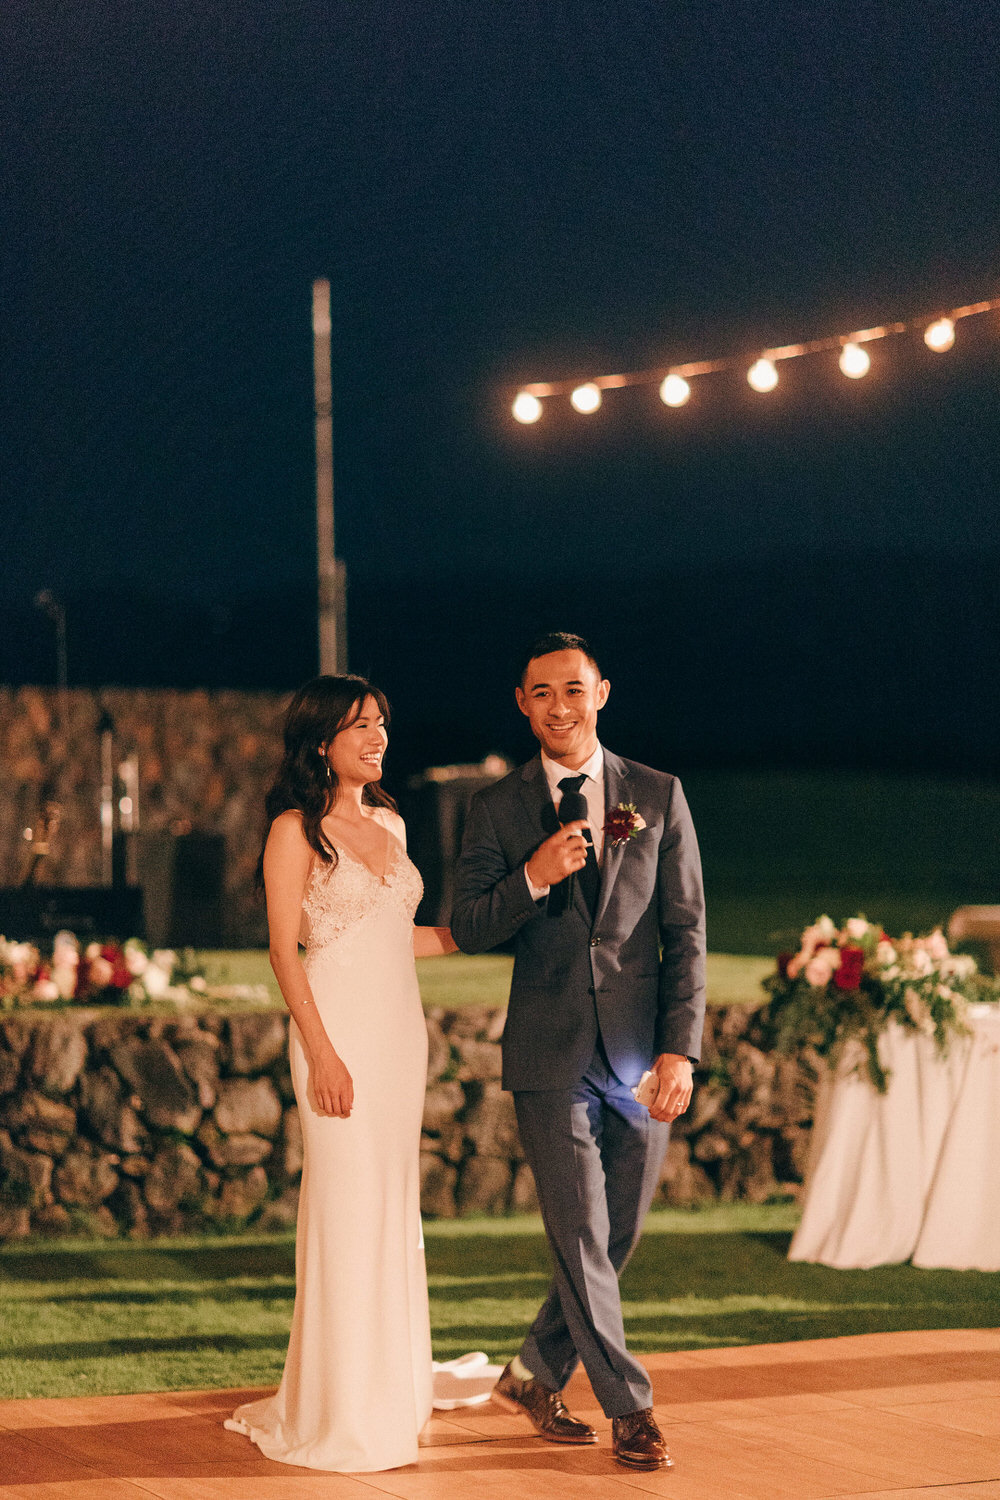 fairmont-orchid-resort-kona-hawaii-wedding-118